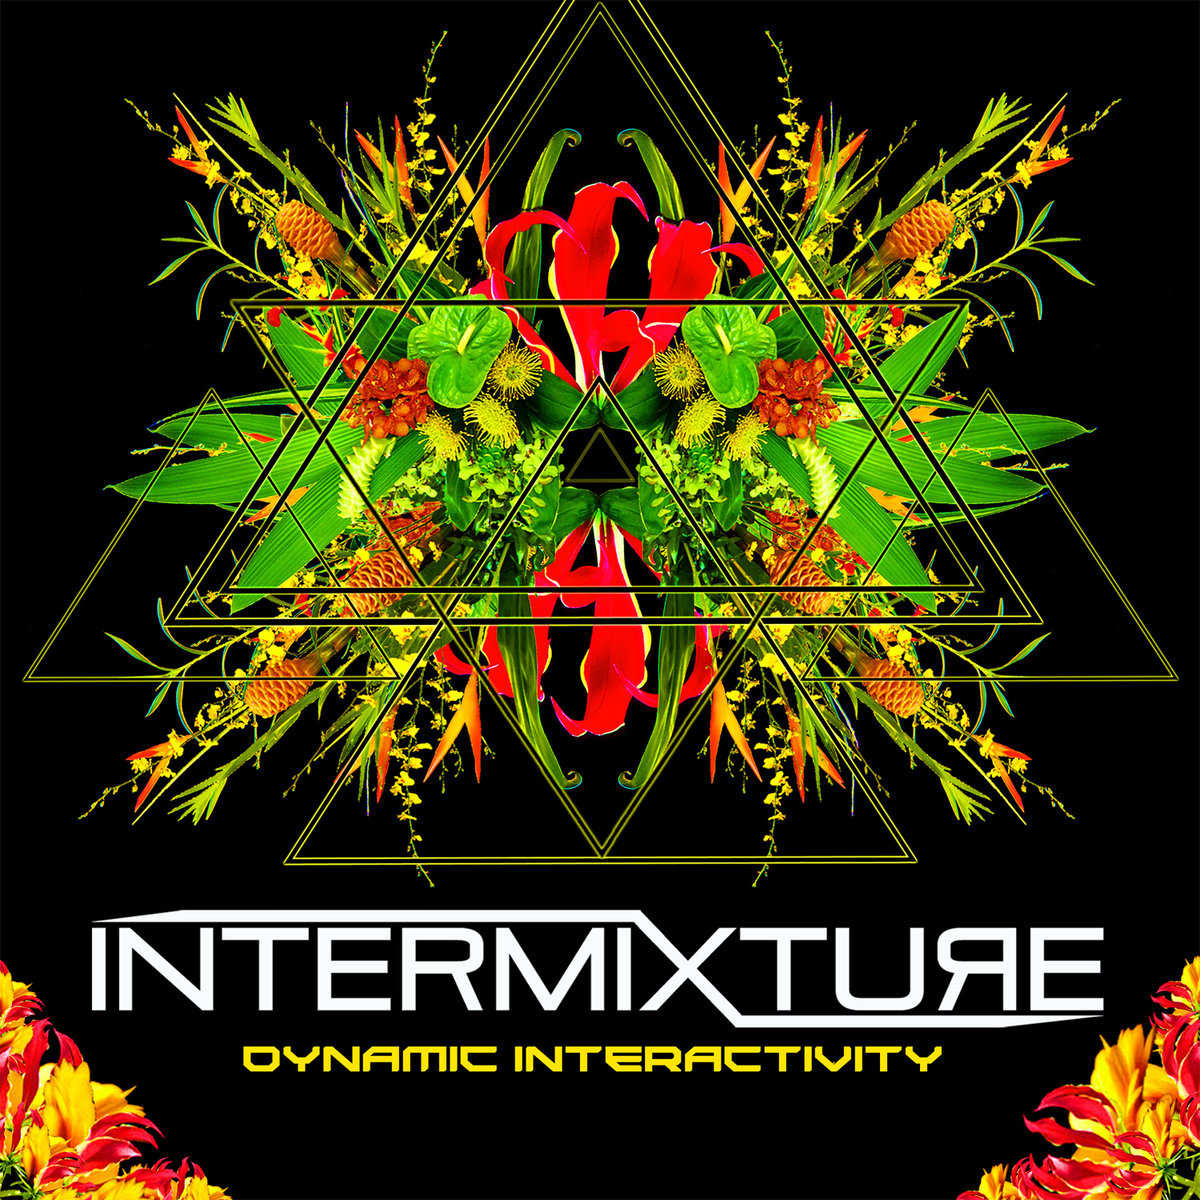 Intermixture - A Greater Reality @ 'Dynamic Interactivity' album (bass, electronic)